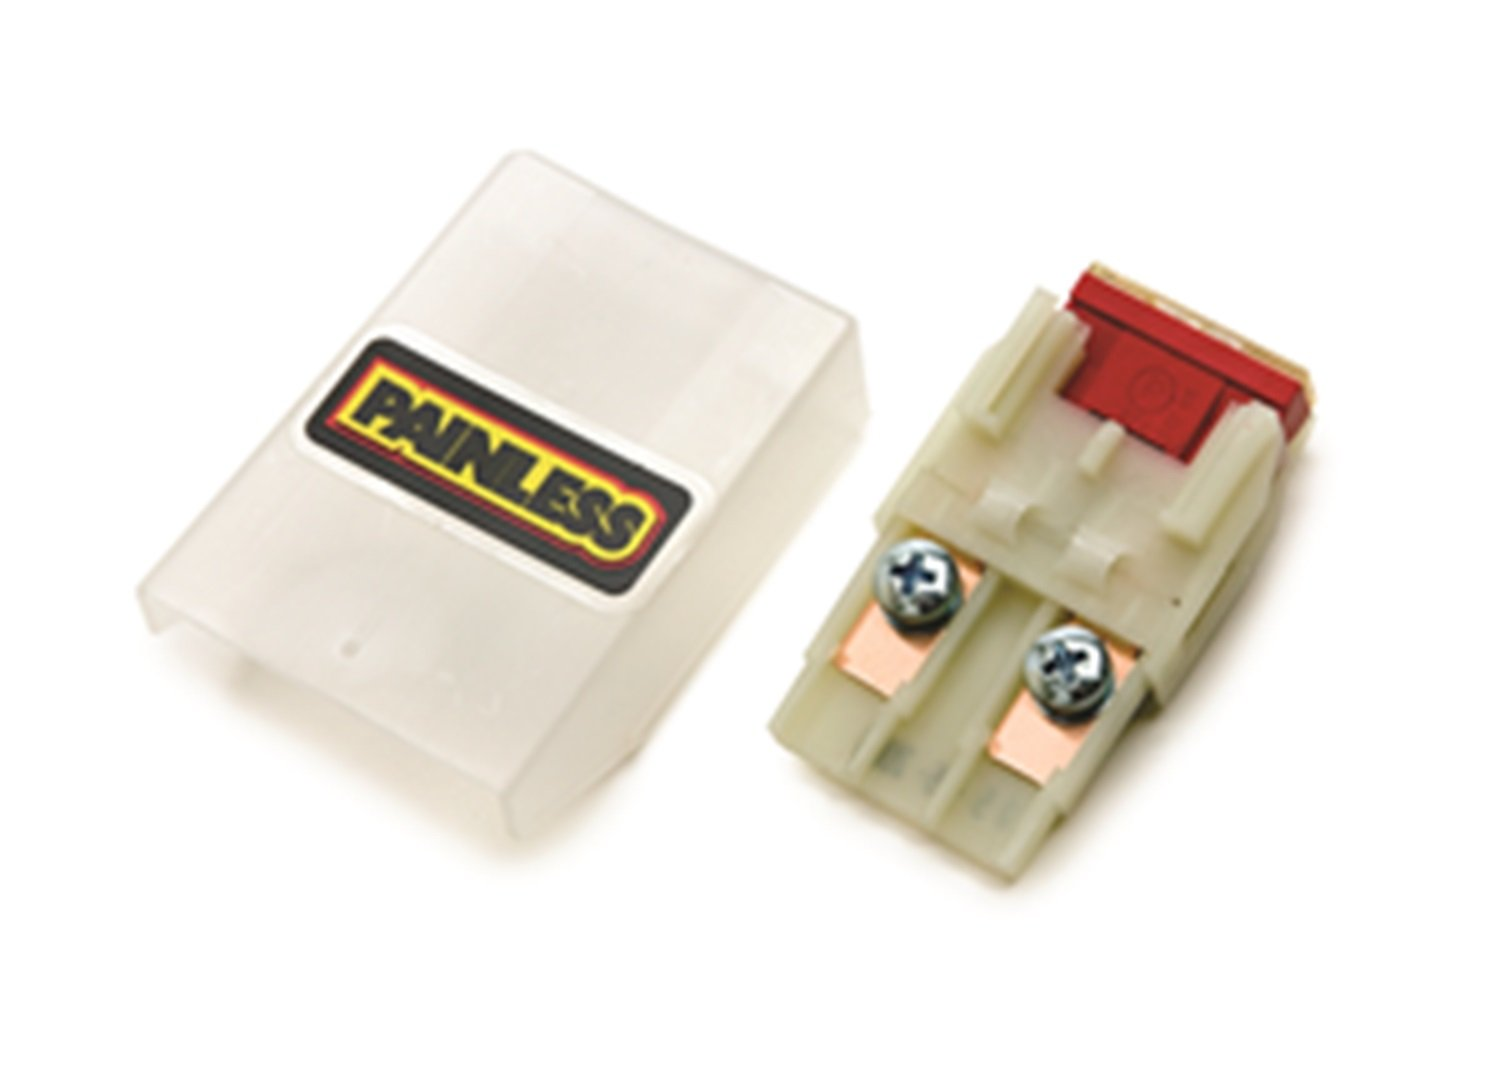 Painless 80101 Maxi Fuse Assembly (Includes 70 Amp Maxi Fuse), 1 Pack Painless Wiring